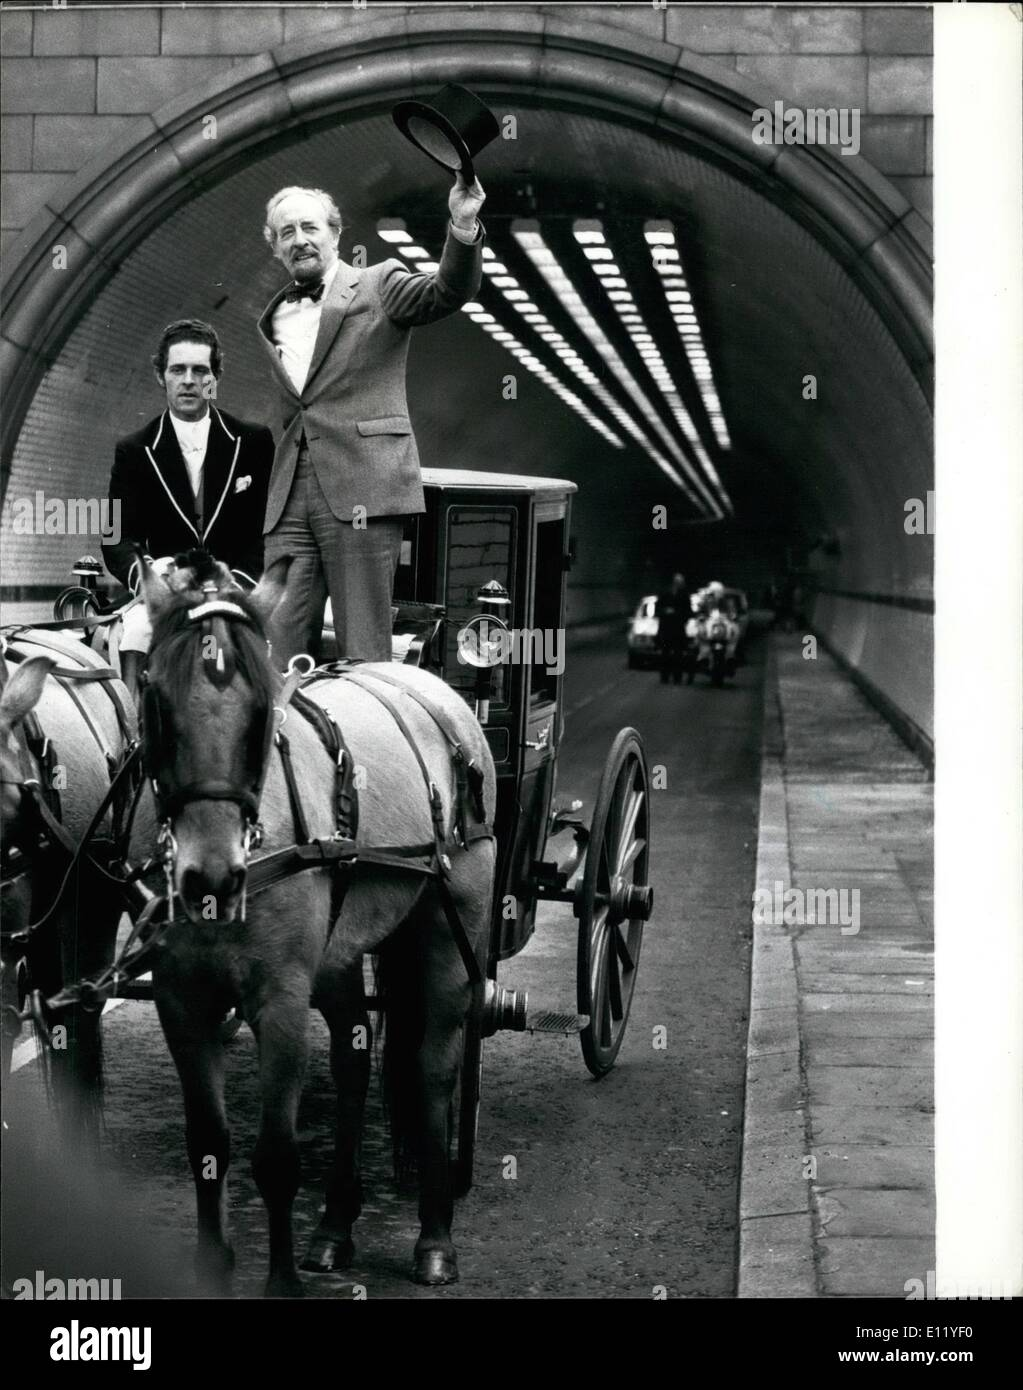 Apr. 02, 1981 - April 2nd 1981 The Rotherhithe Tunnel reopens. The 73 year old Rotherhithe tunnel under the Thames reopened today following an eight month facelift during which the Greater London Council has had ultra-modern ventilation and lighting installed at a cost of 3 million. The tunnel was originally constructed for horse drawn traffic, so to mark the reopening Sir Horace Cutler, leader of the CLC, officially opened it by riding through it in a coach and horses - Stock Image